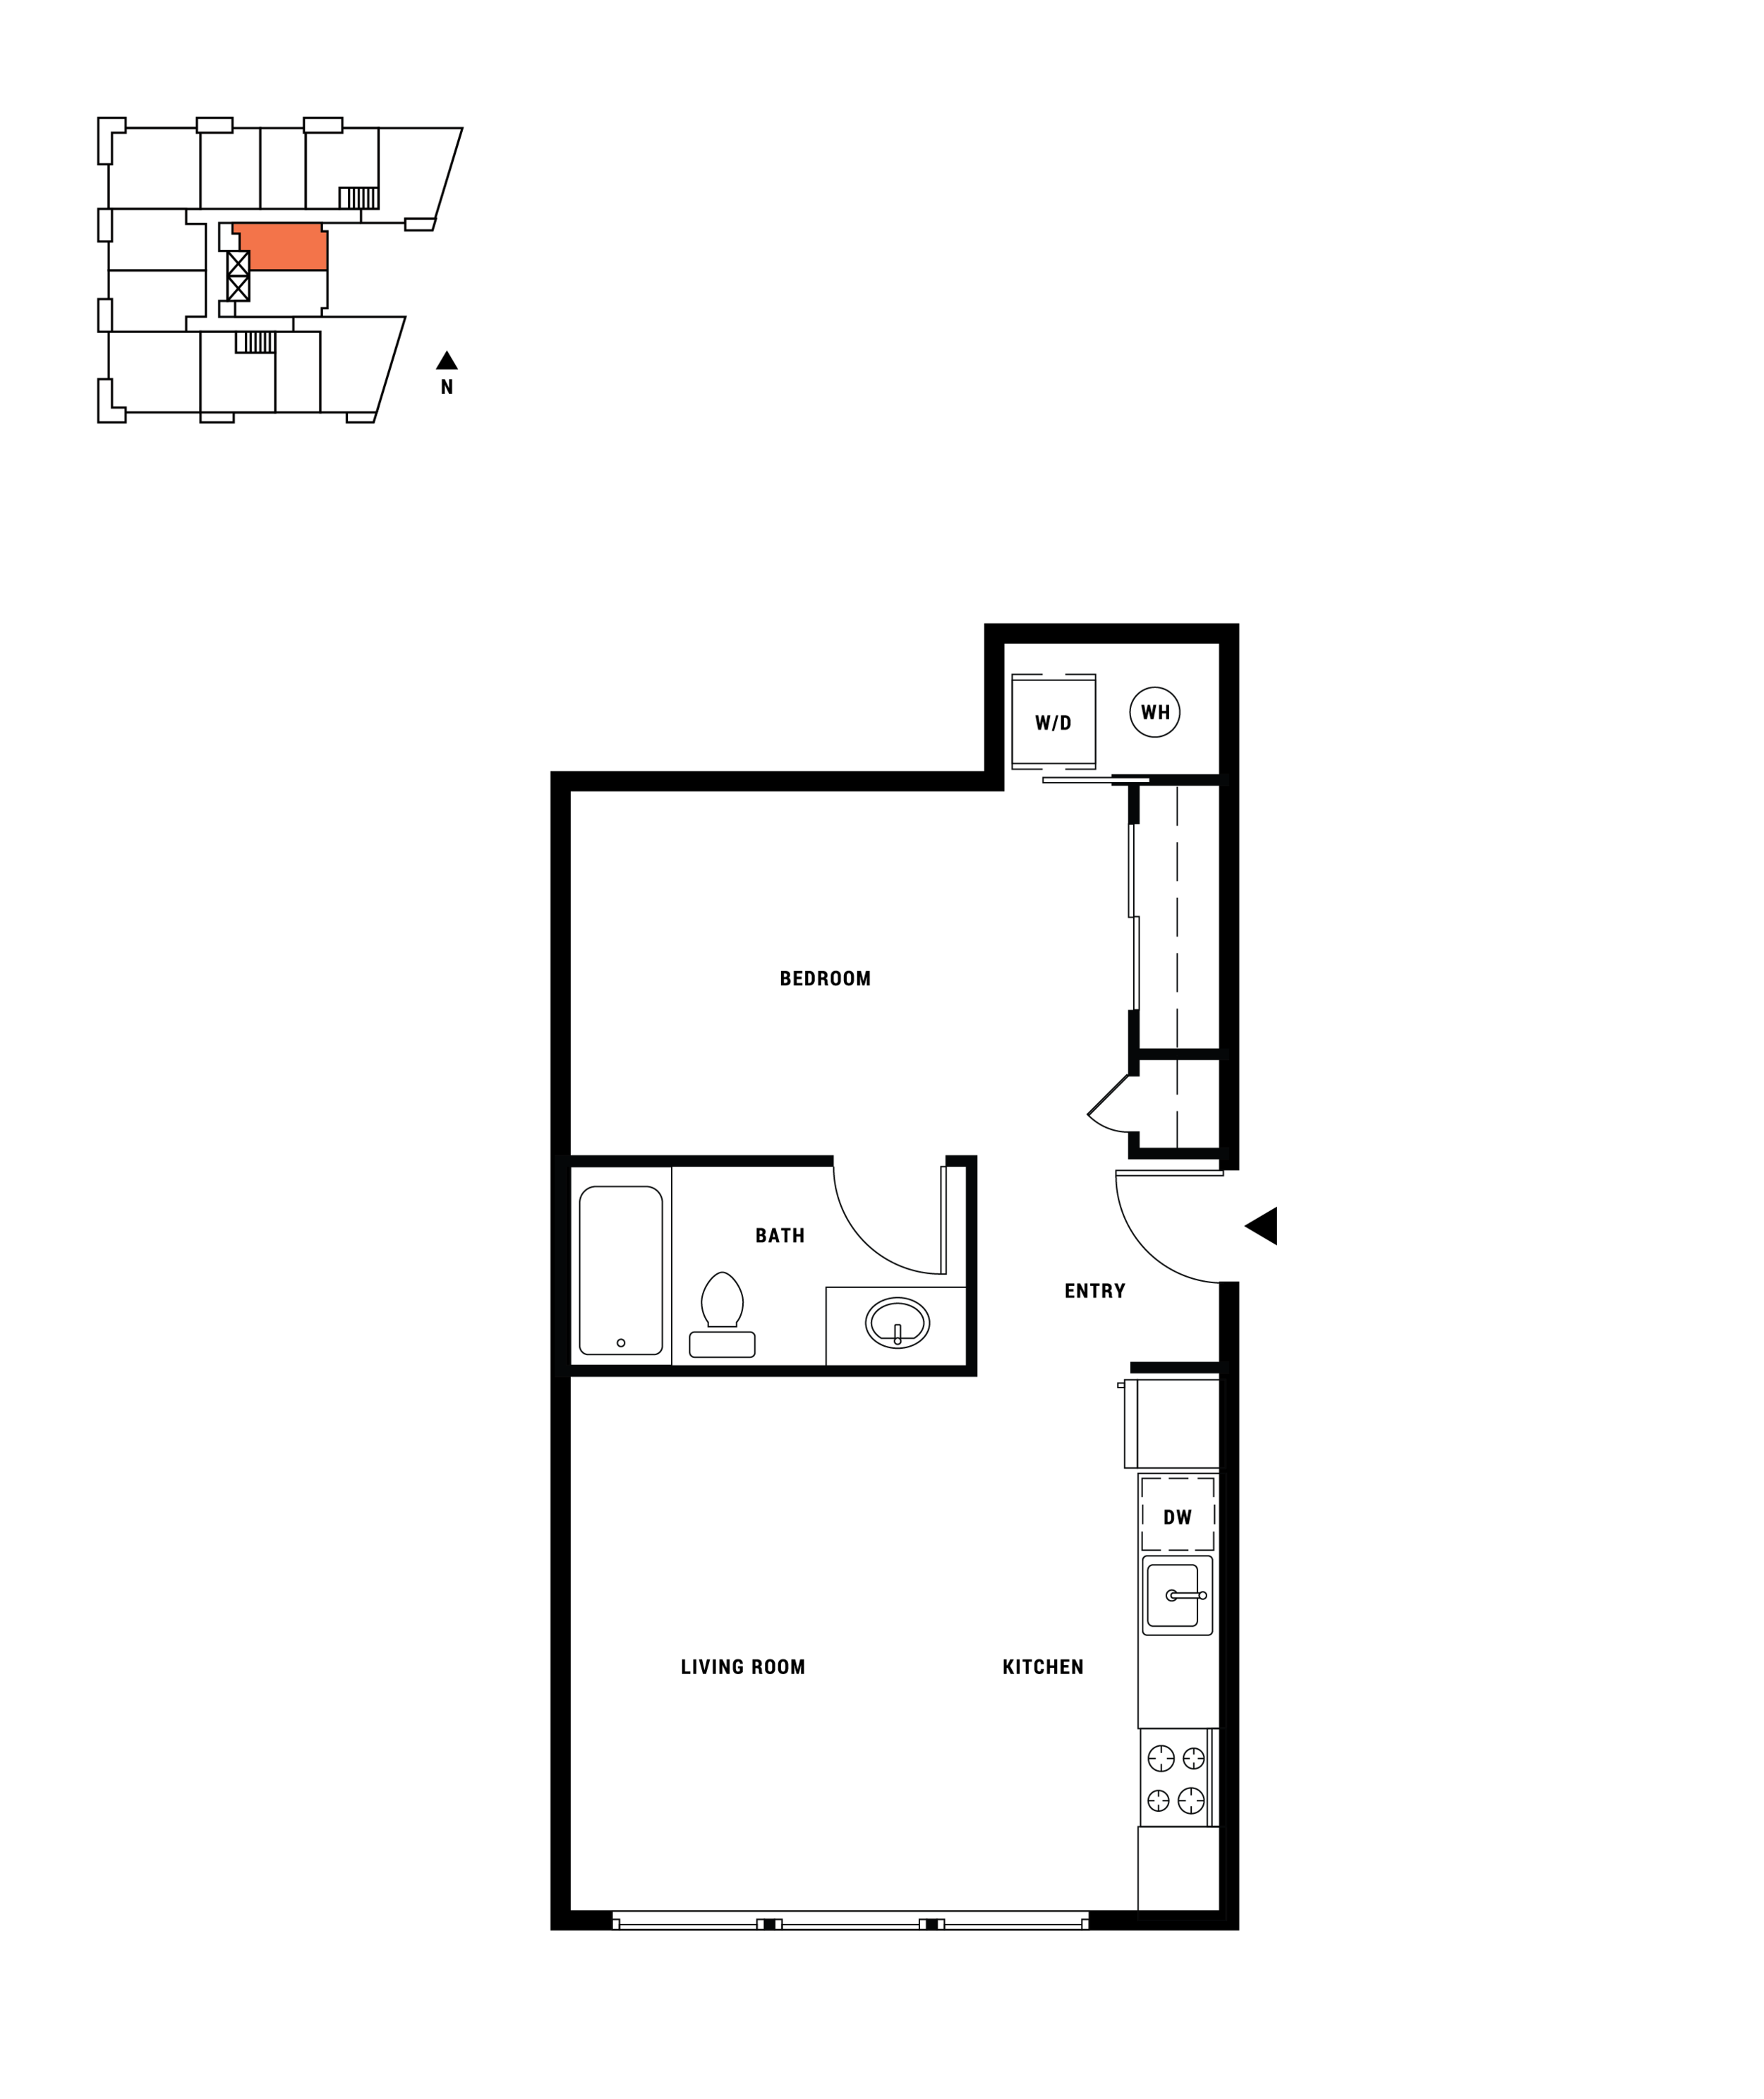 The Slater_Kirkland_Floorplans_no_logo-01.png